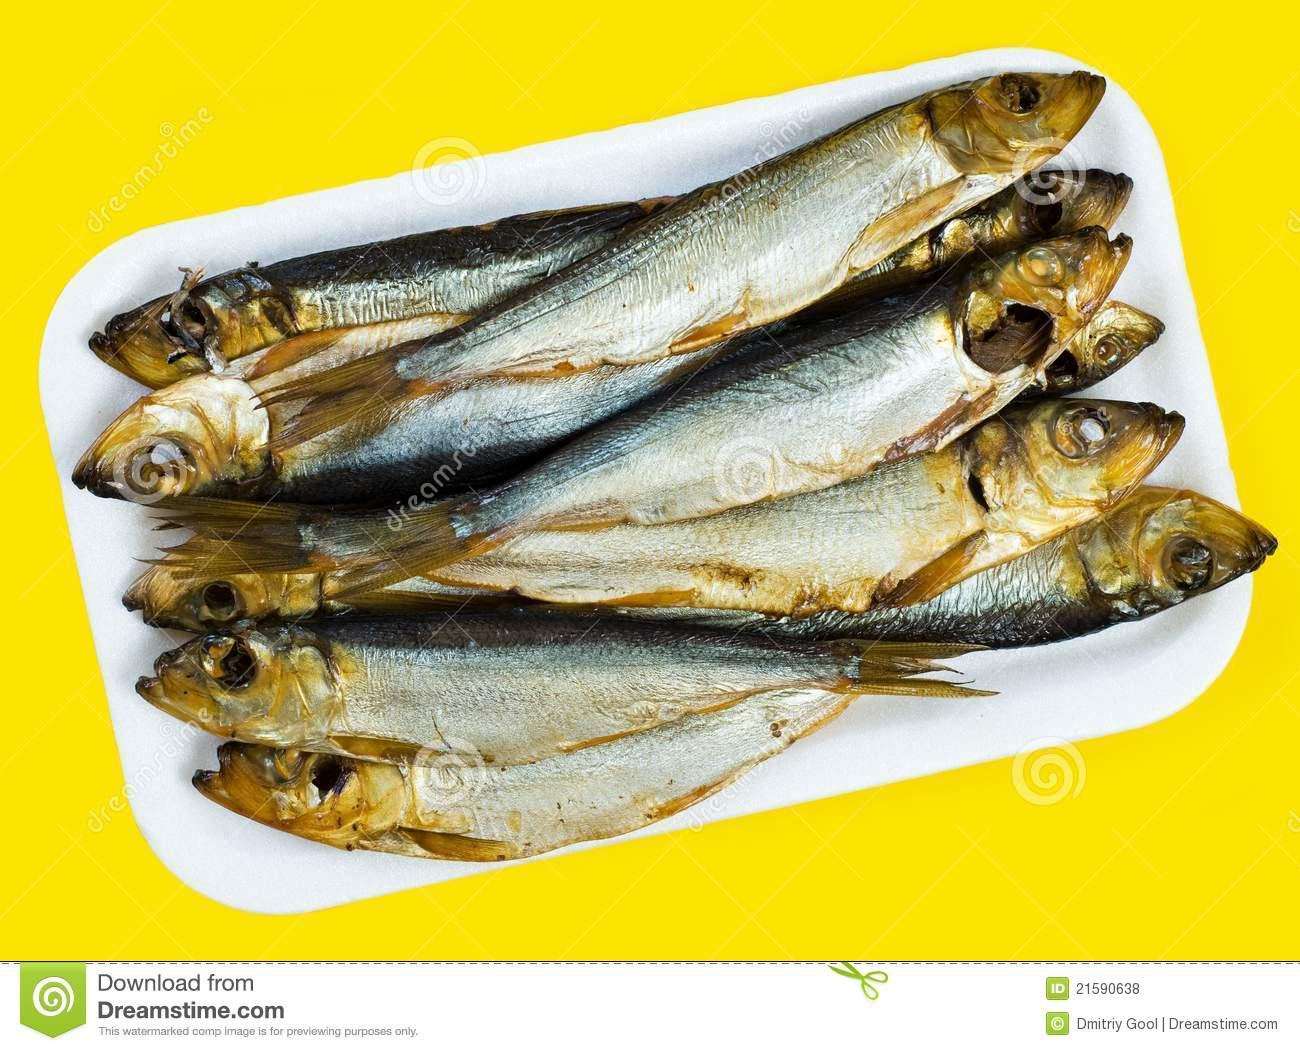 dried fish clipart 8 | Clipart Station for Dried Fish Clipart  584dqh